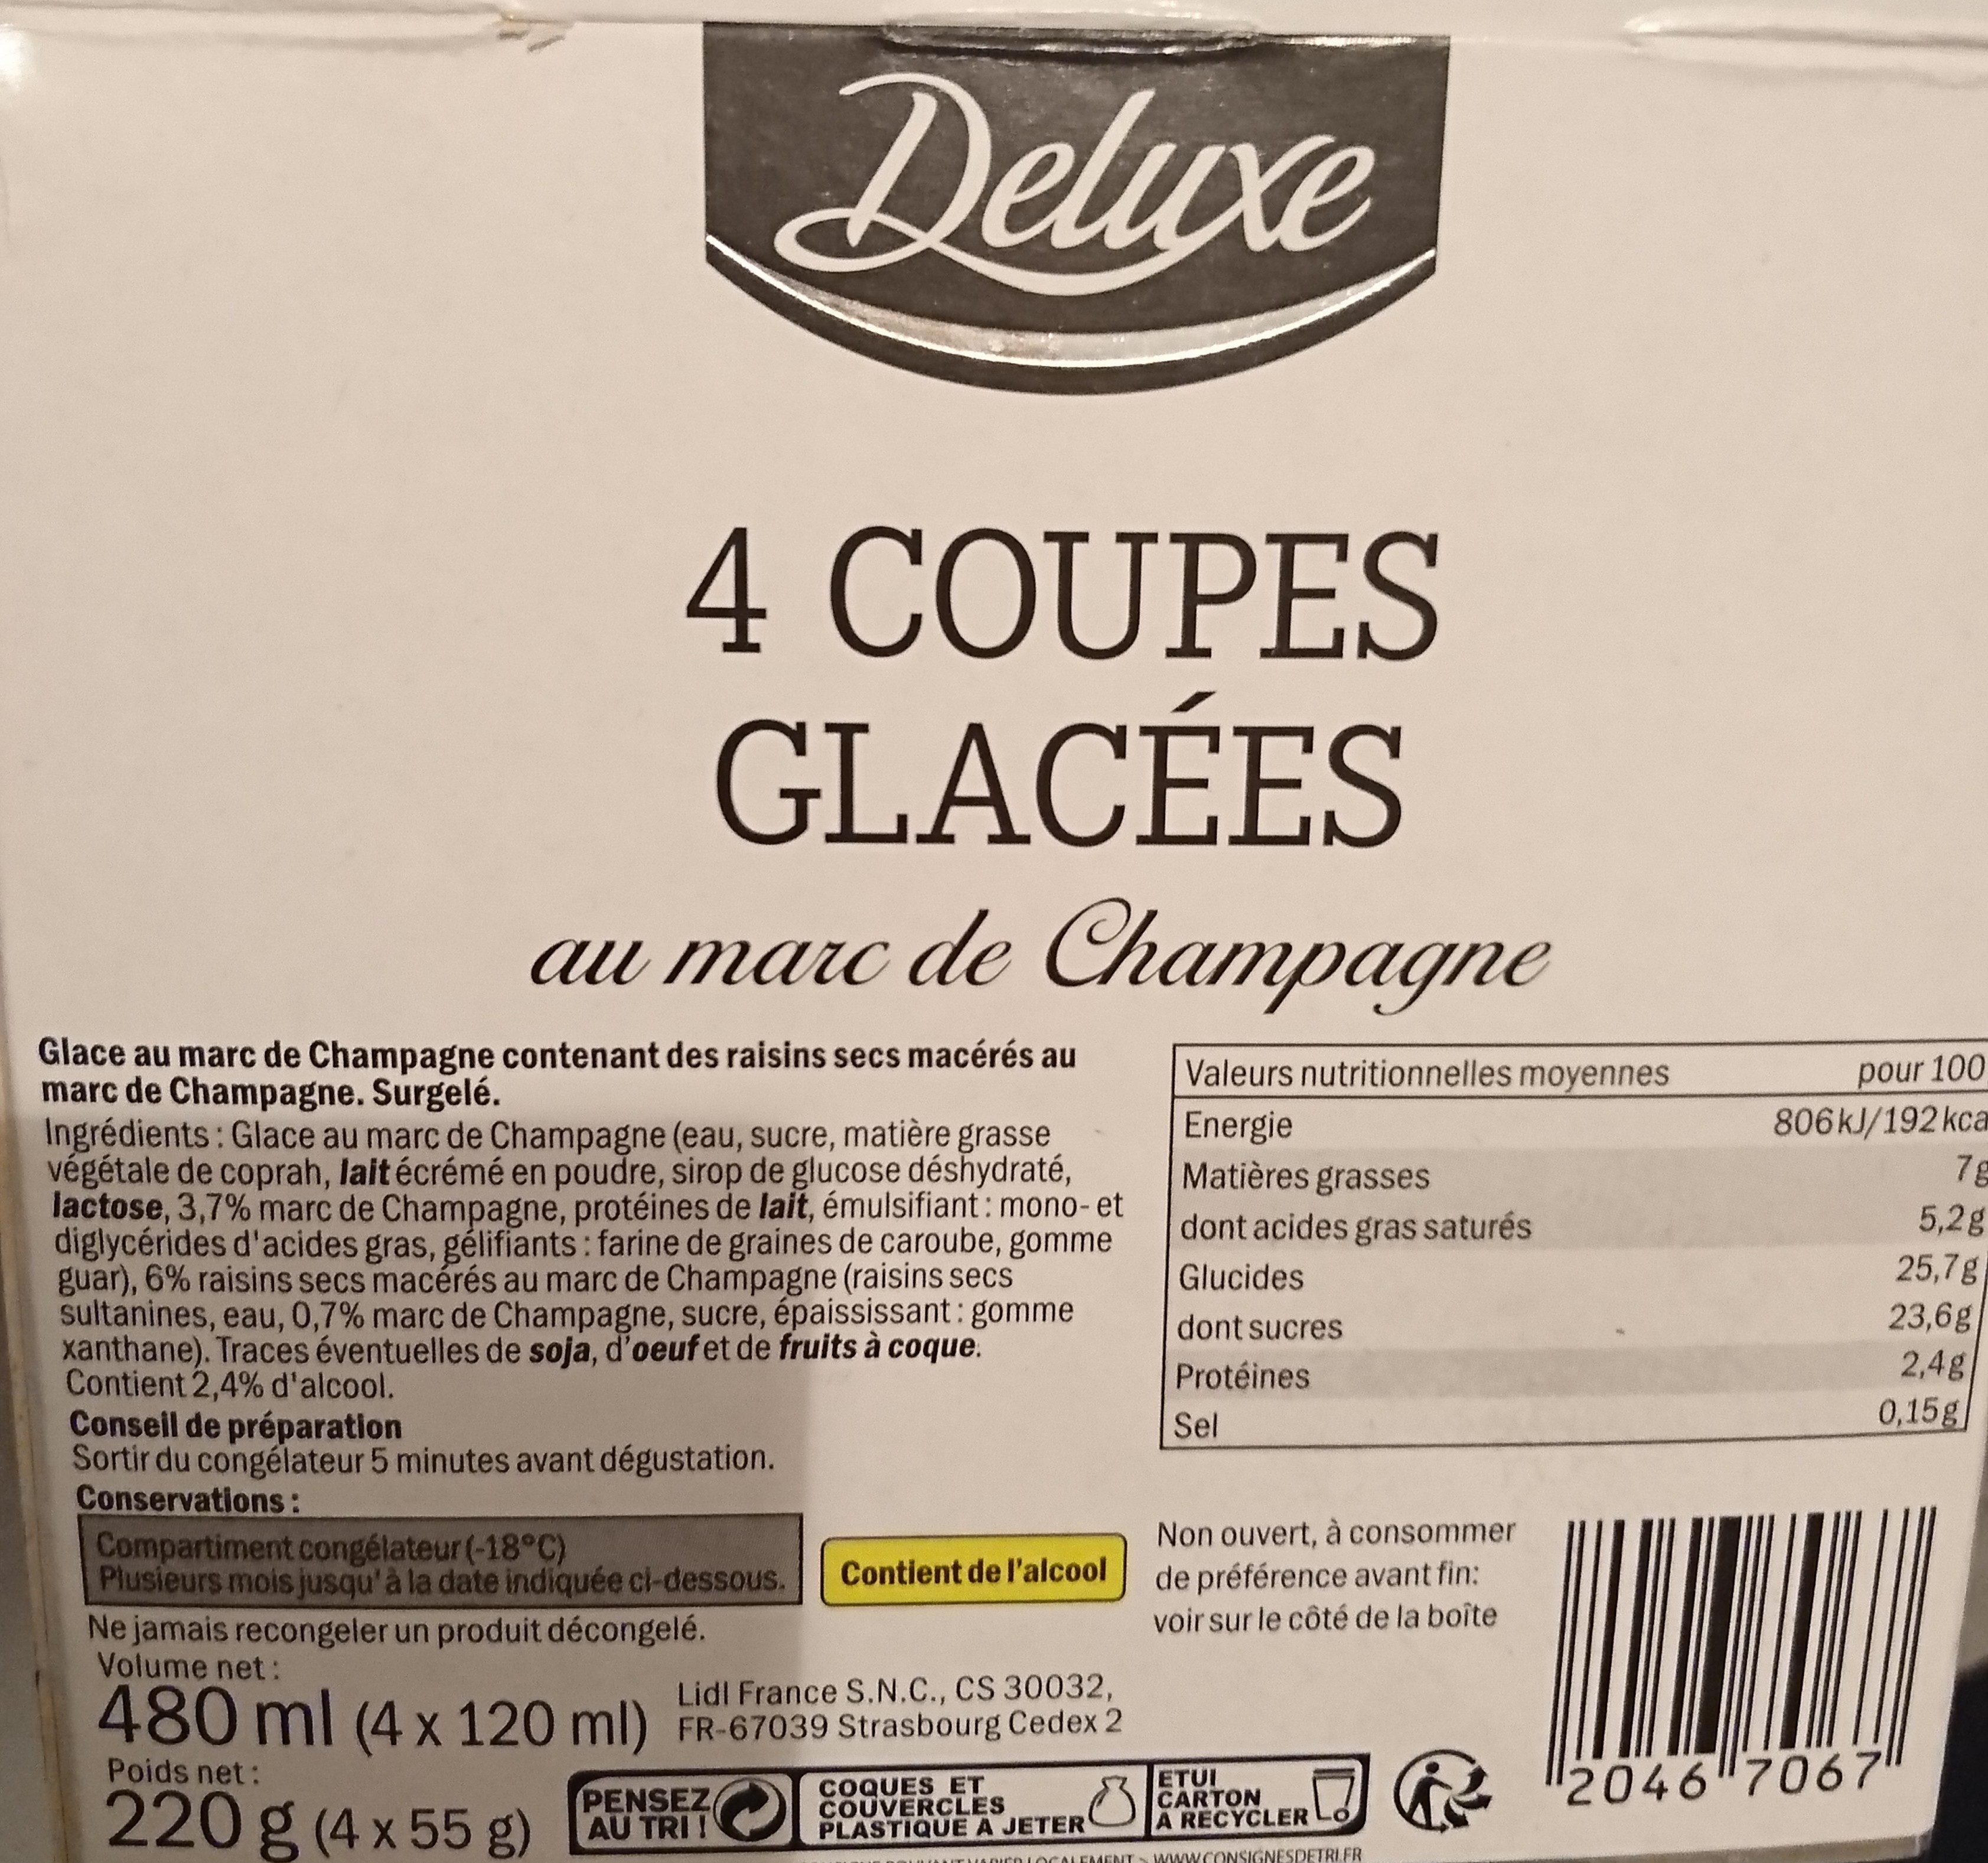 Coupe glacé - Ingredients